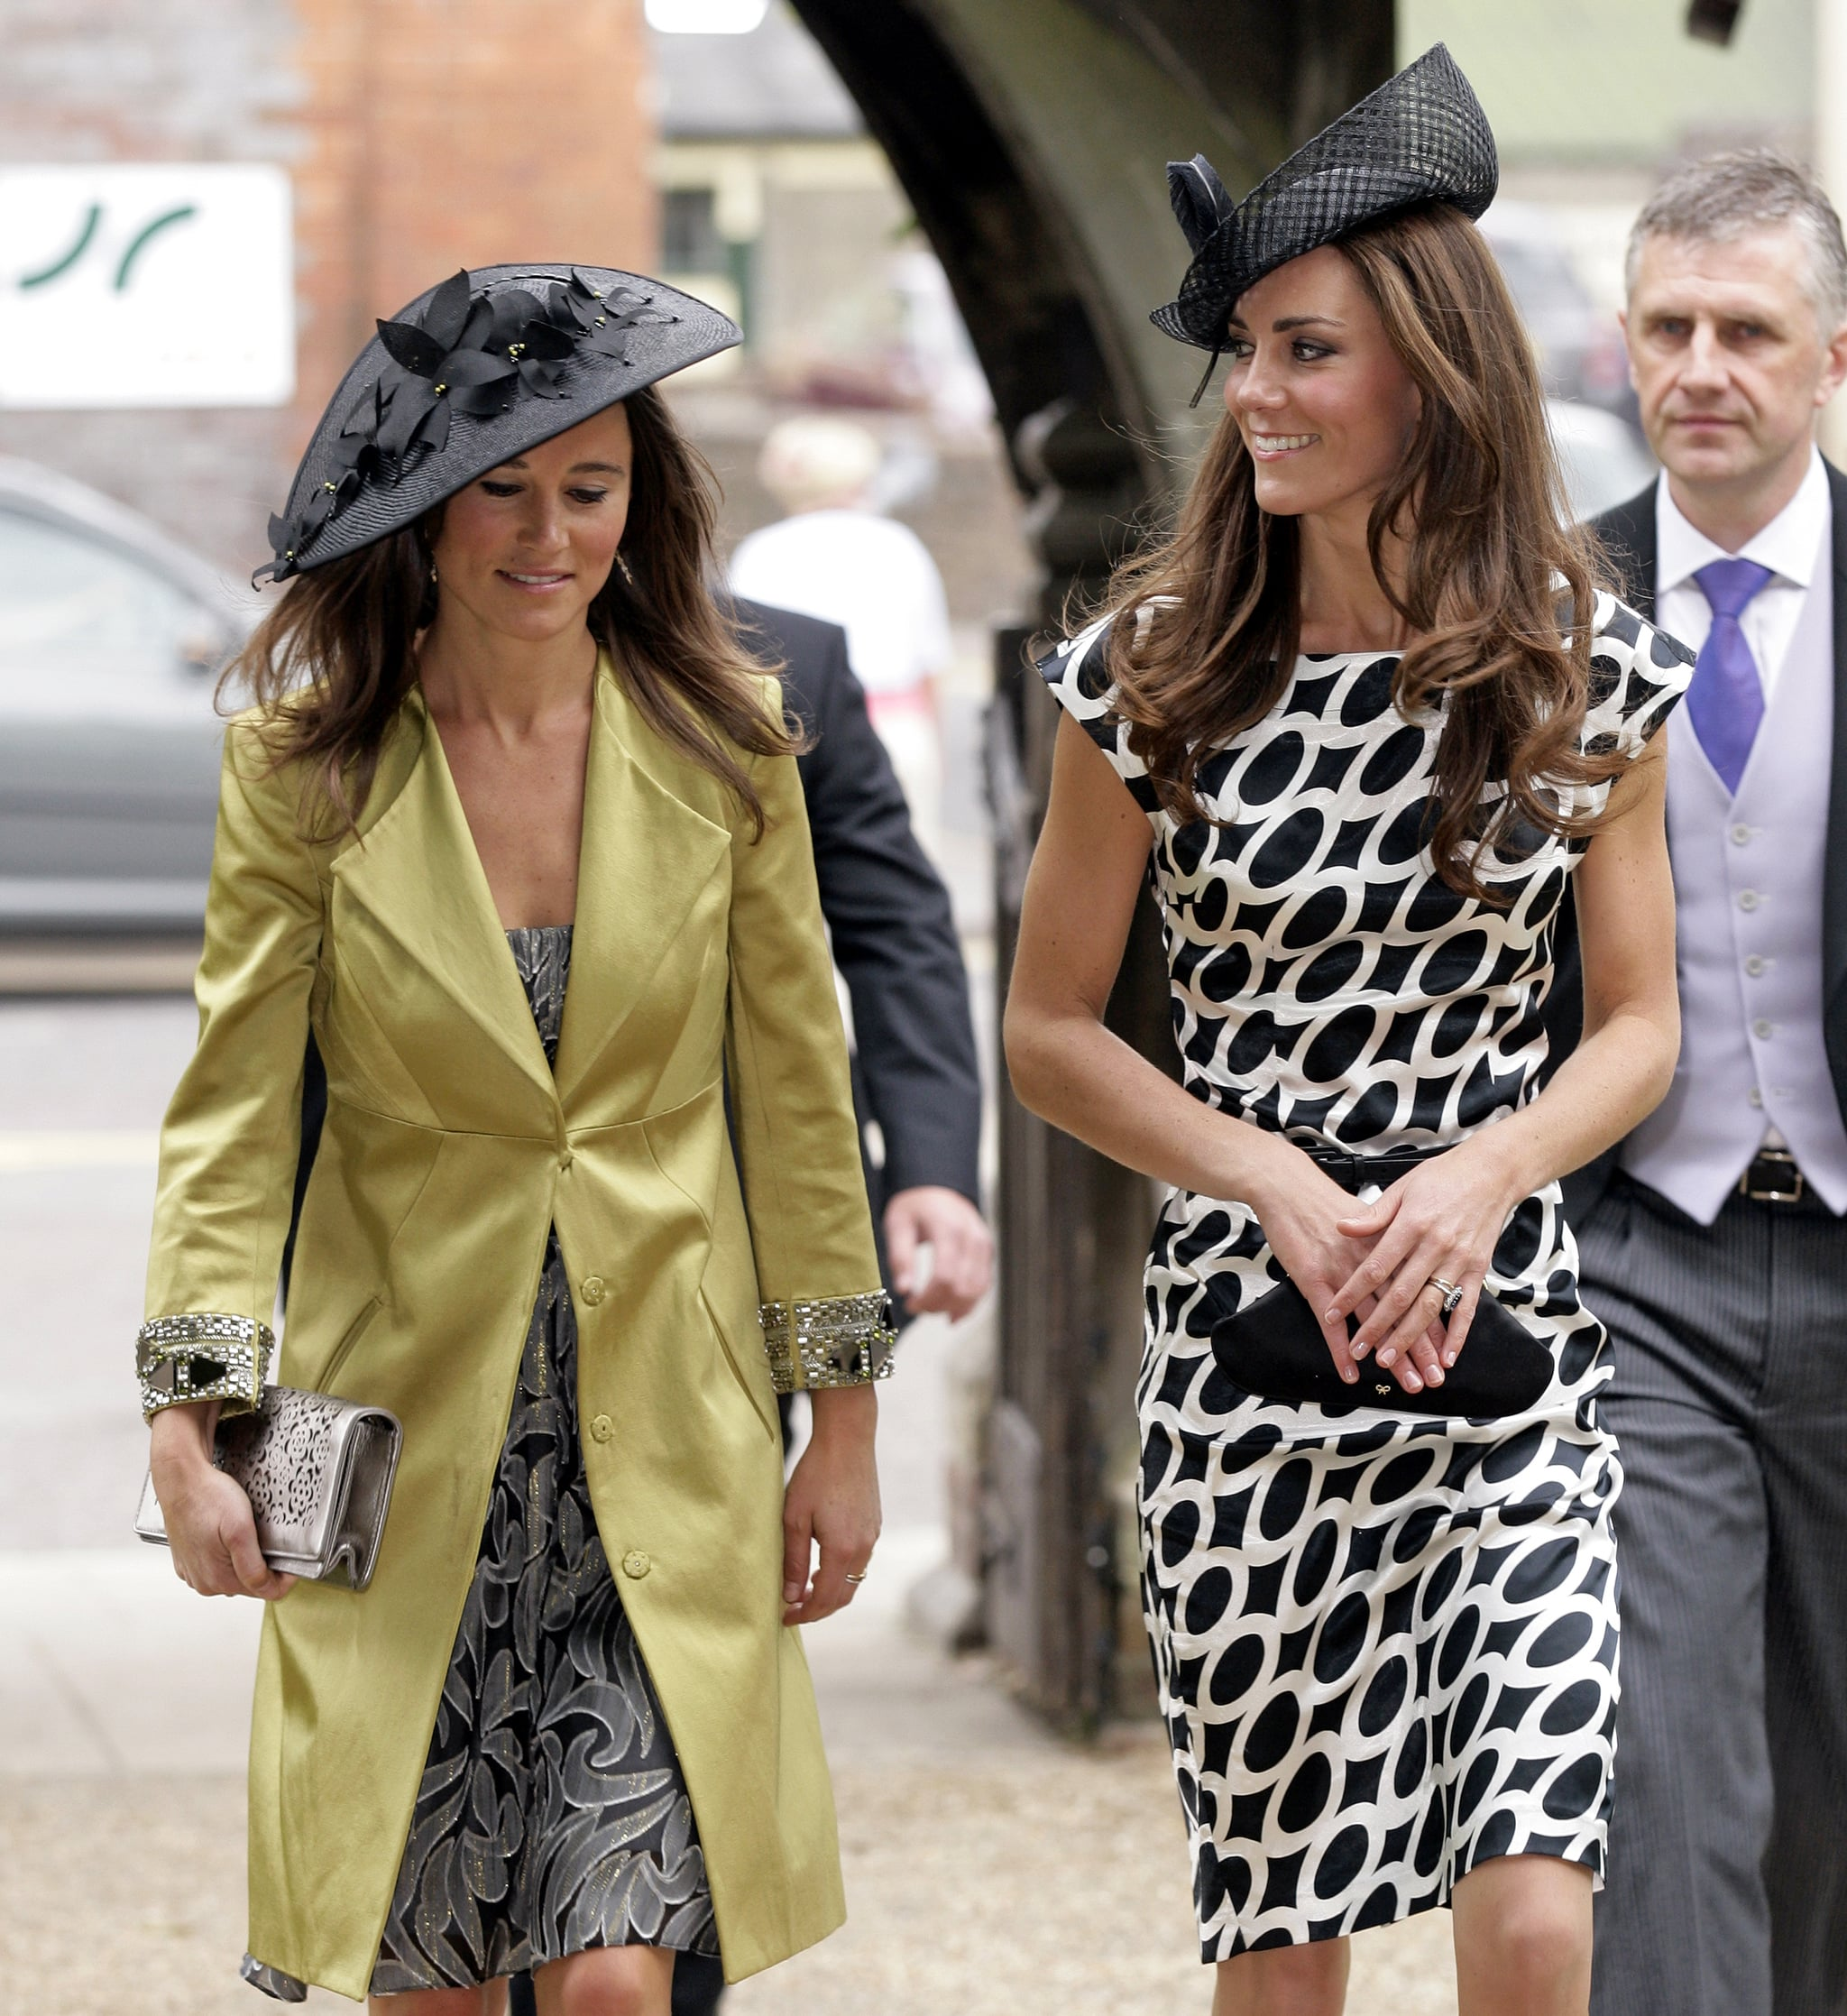 Pippa and Kate Middleton wore almost identical headpieces in July 2011 to watch their friend and jockey Sam Waley-Cohen tie the knot with Annabel Ballin in Berkshire, UK.